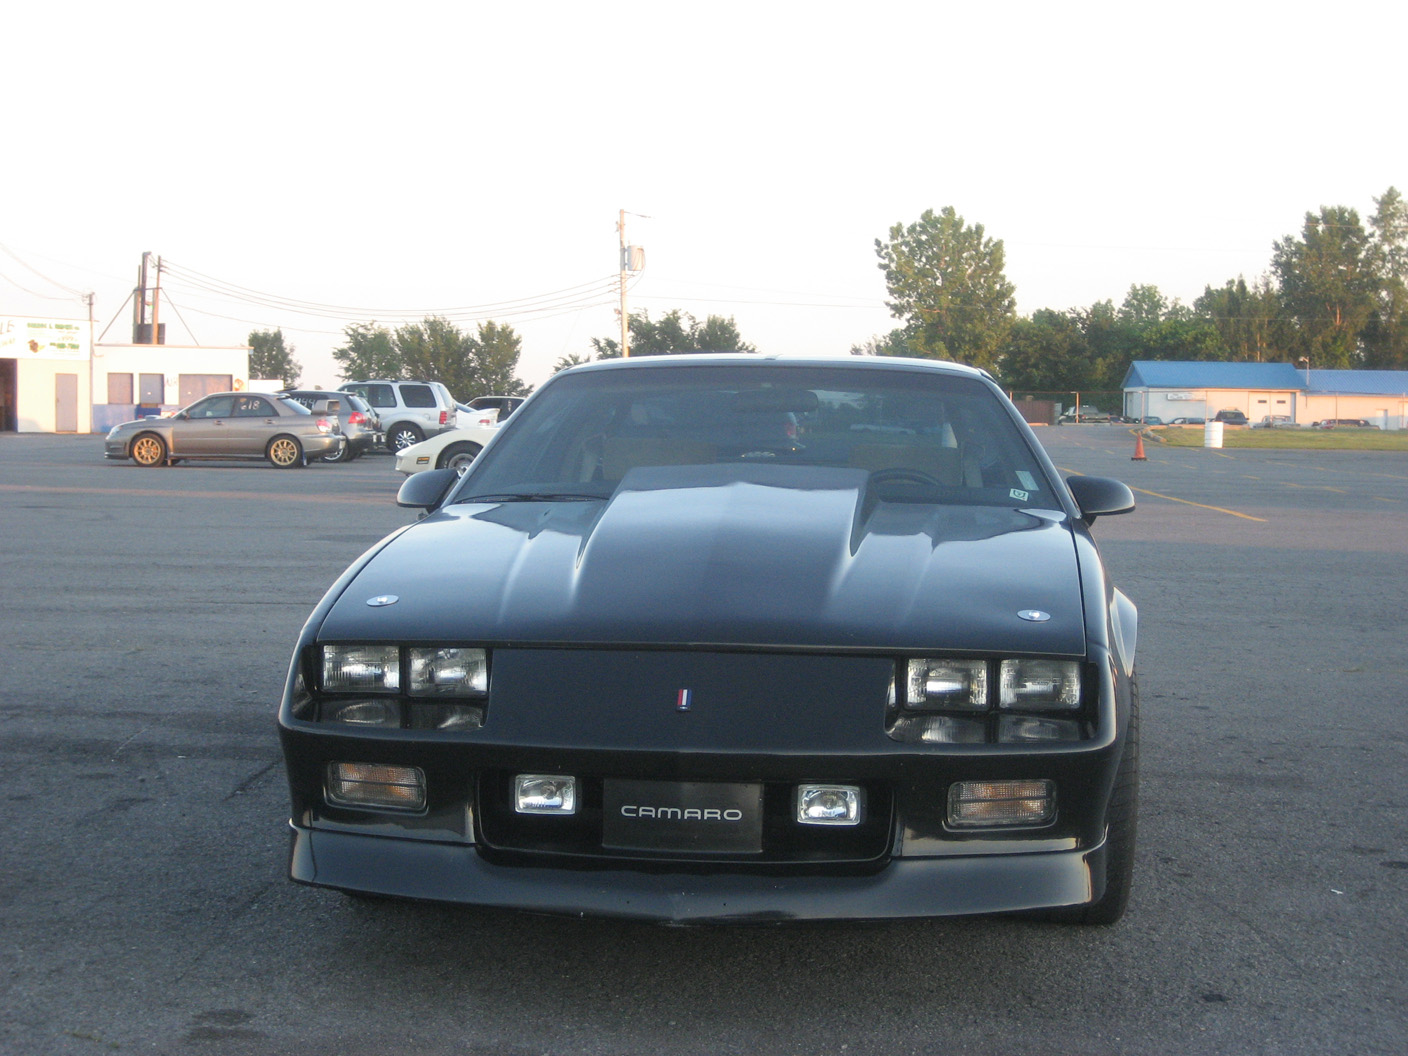 1986  Chevrolet Camaro IROC-Z picture, mods, upgrades